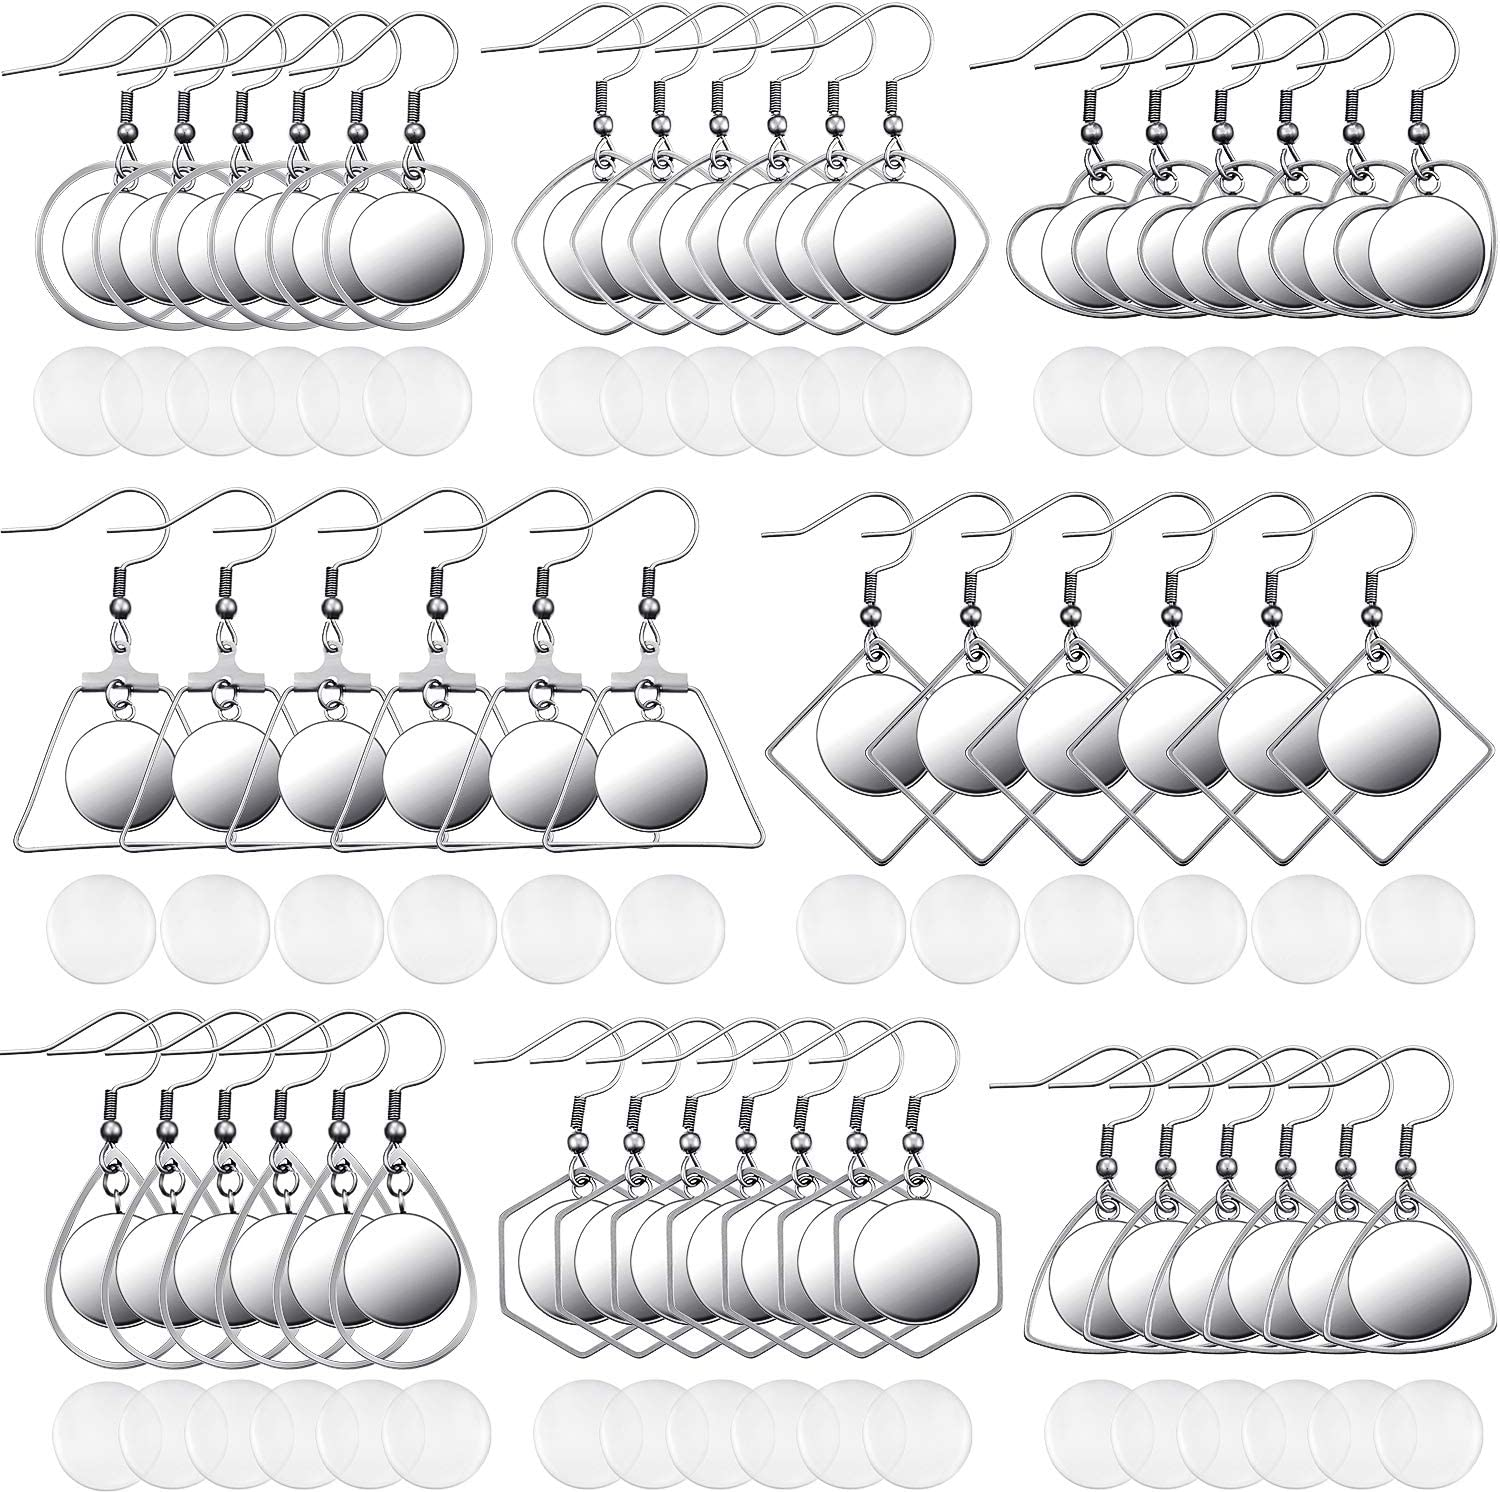 108 Pieces Stainless Steel Earring Blanks Wire Hooks Bezel Trays with 12 mm Glass Cabochons Setting for Jewelry Making DIY Craft 81dyL7NDlqL